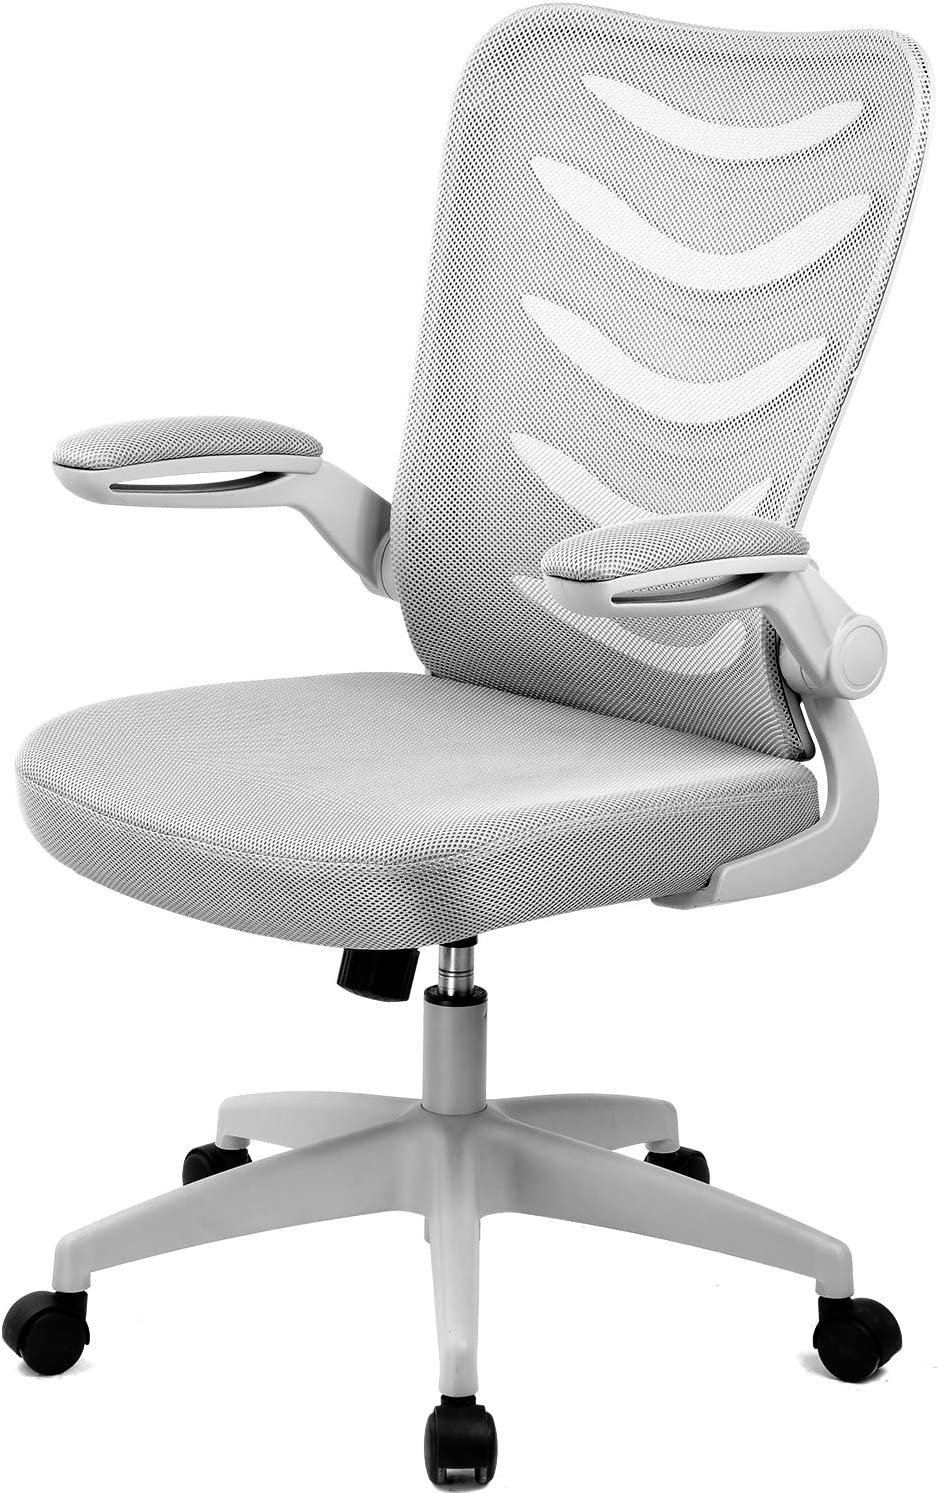 COMHOMA Desk Chair with Armrest Computer Chairs Ergonomic Conference Executive...